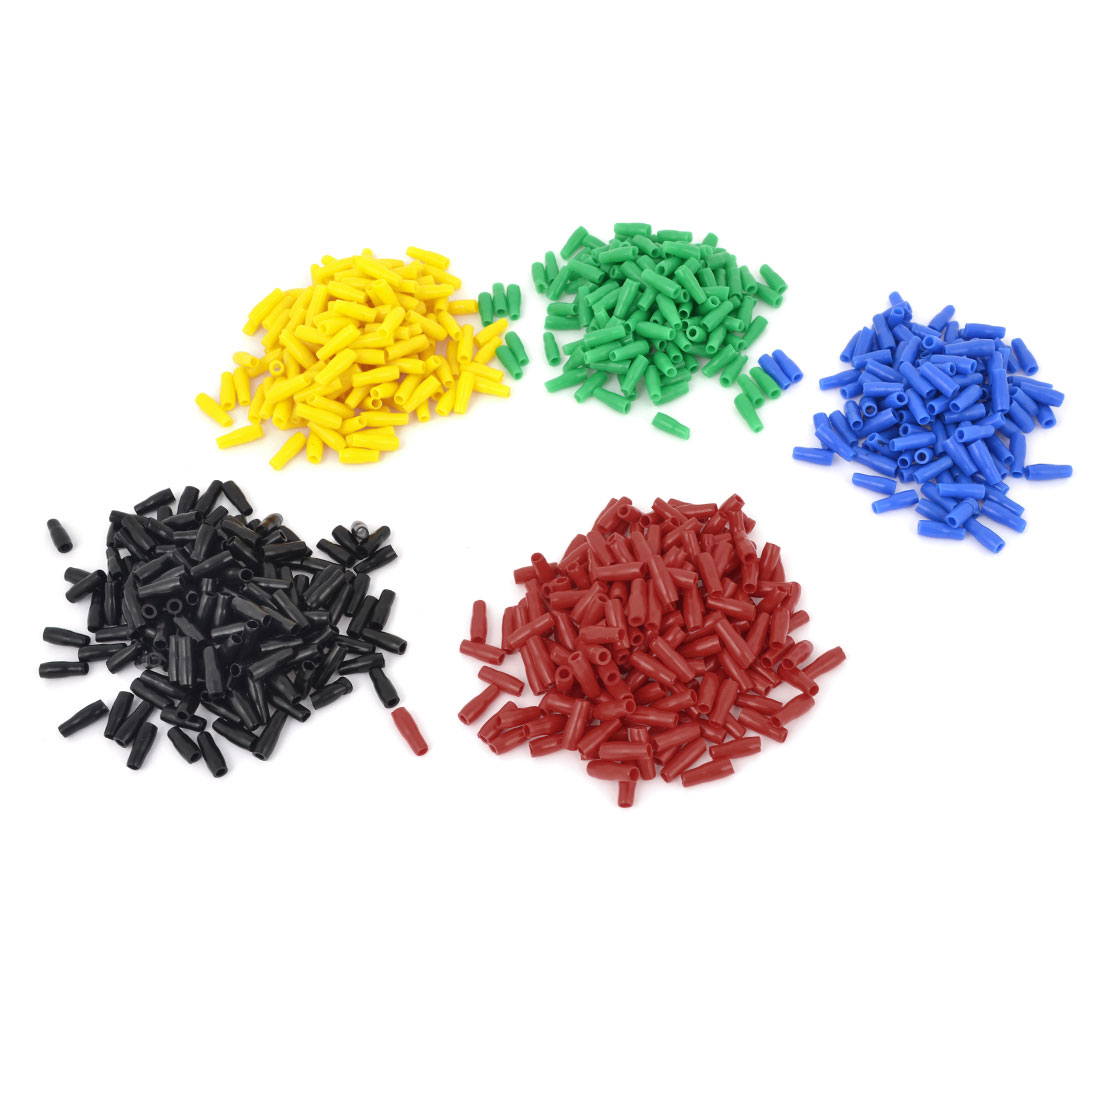 1000pcs Multicolor Soft PVC 5.5-6mm2 Wire Terminal End Insulated Sleeves